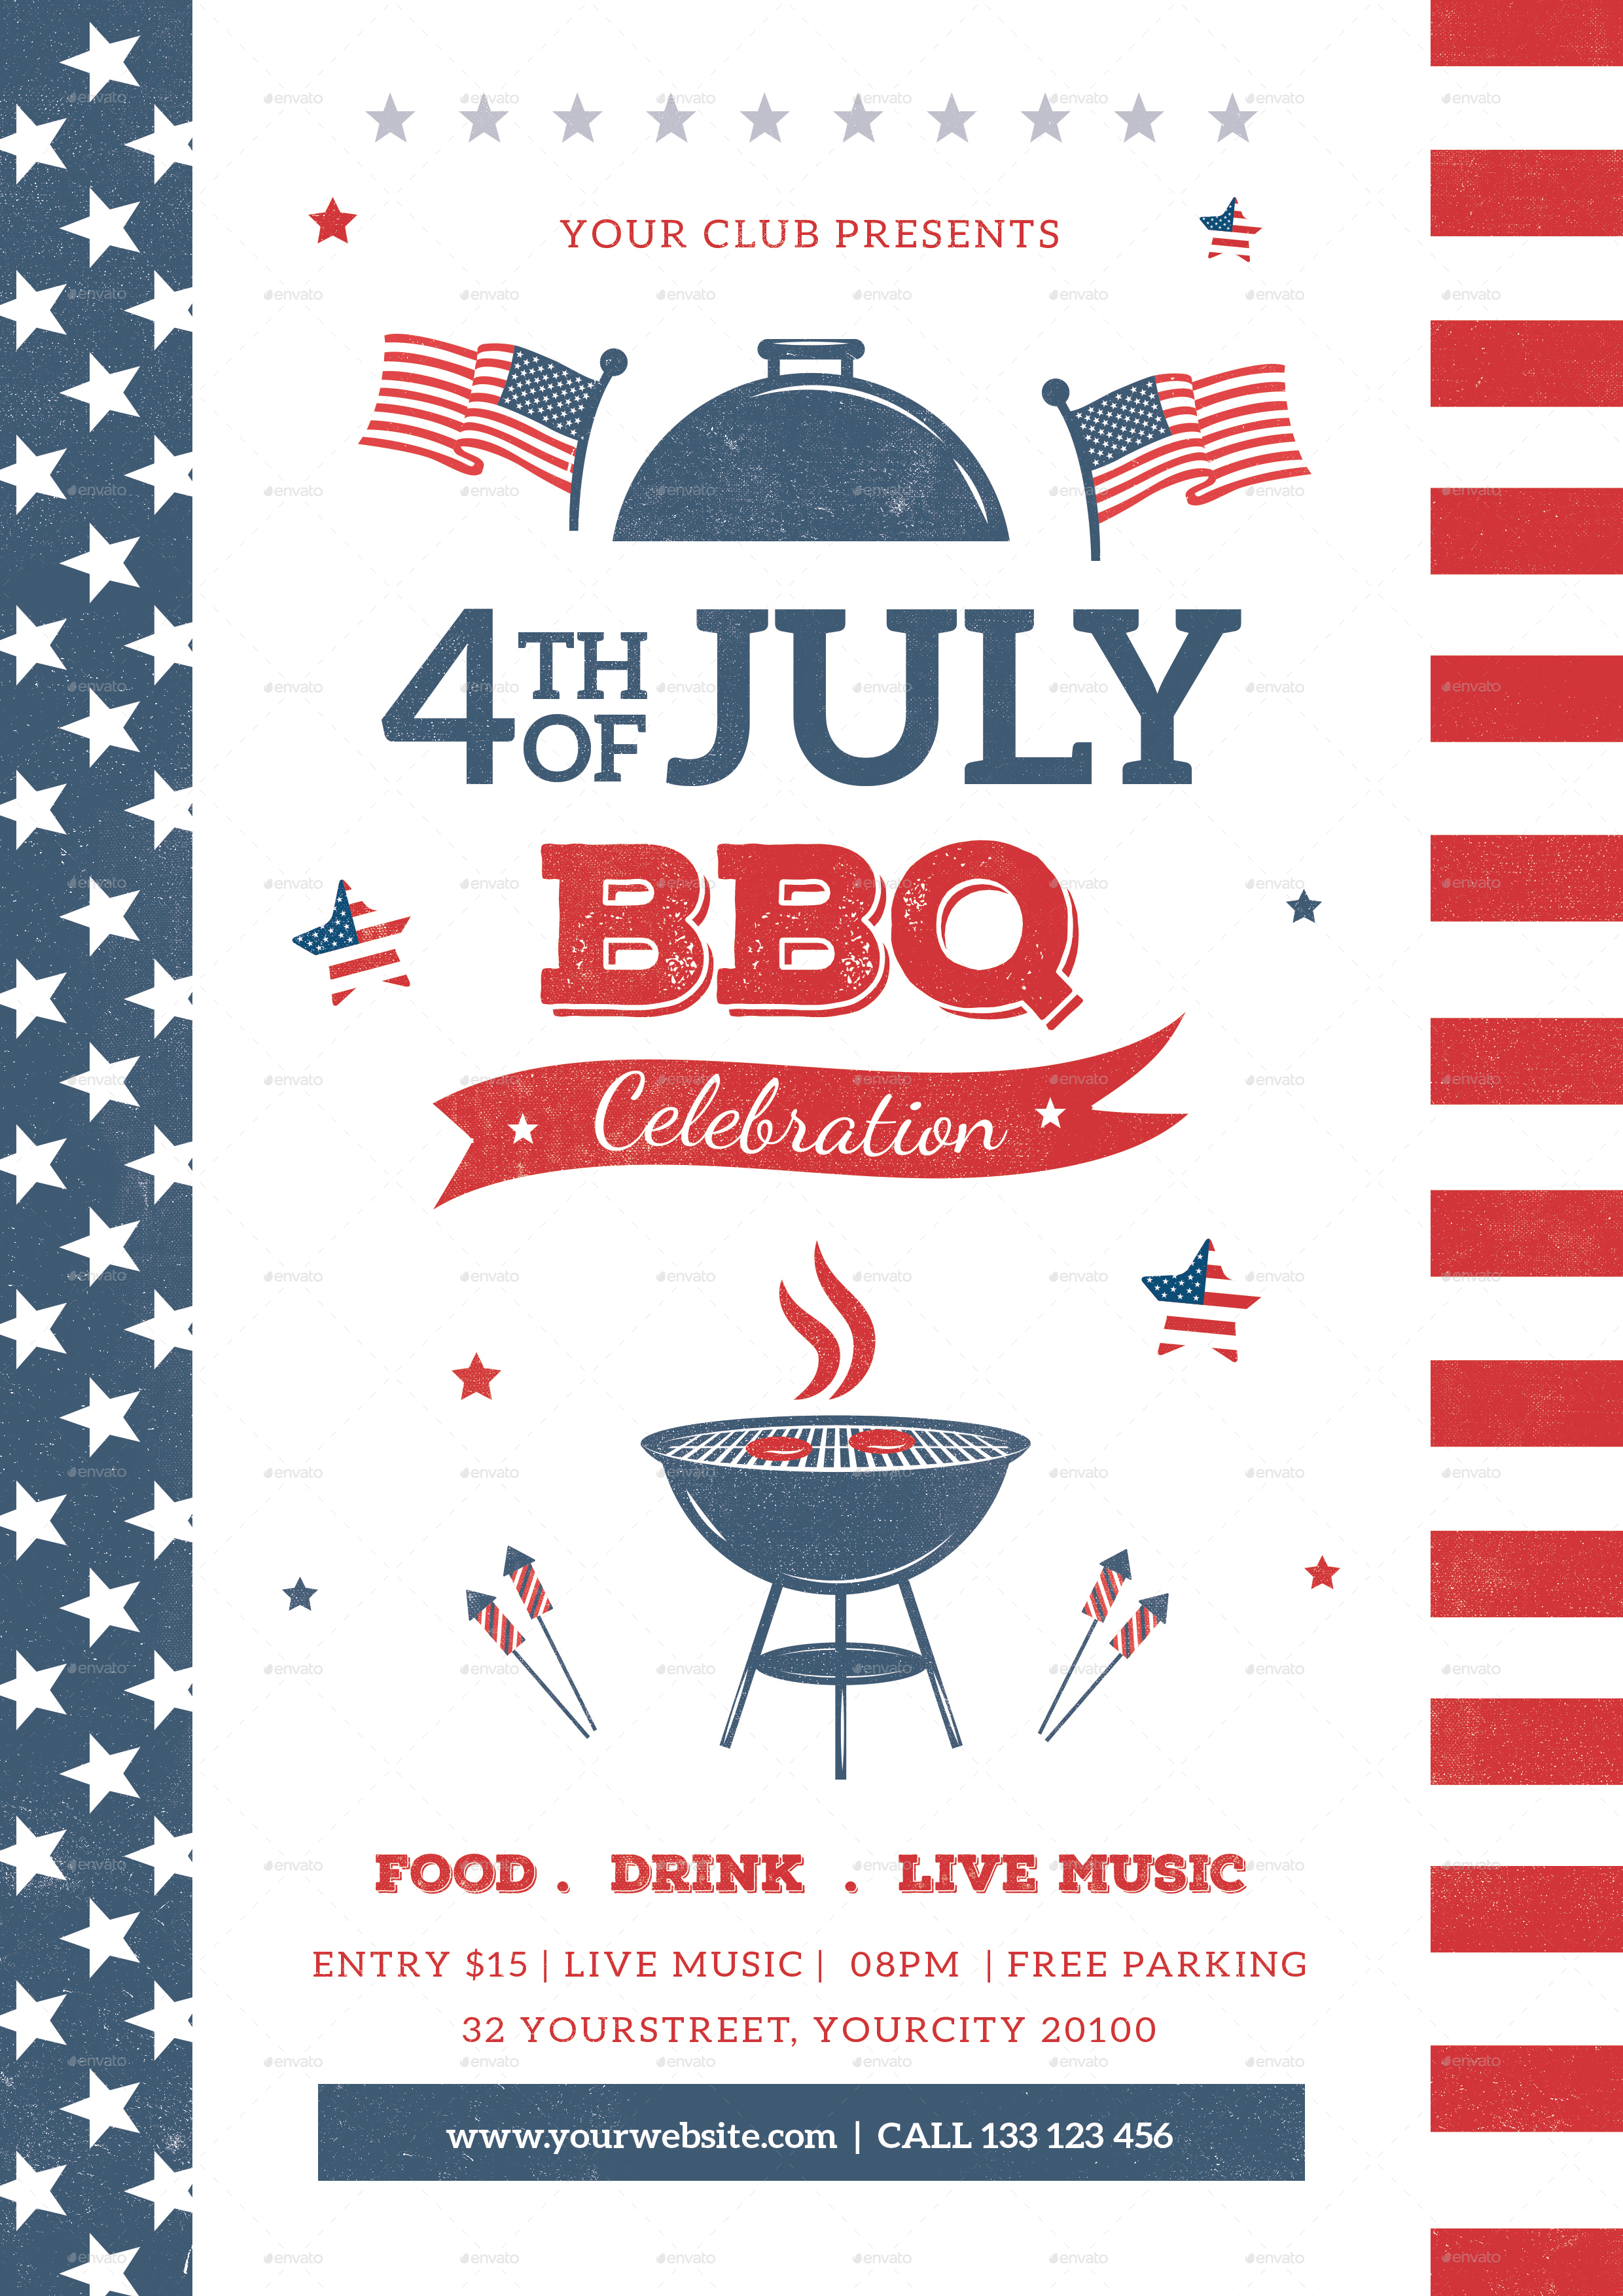 4th of july bbq flyer by infinite78910